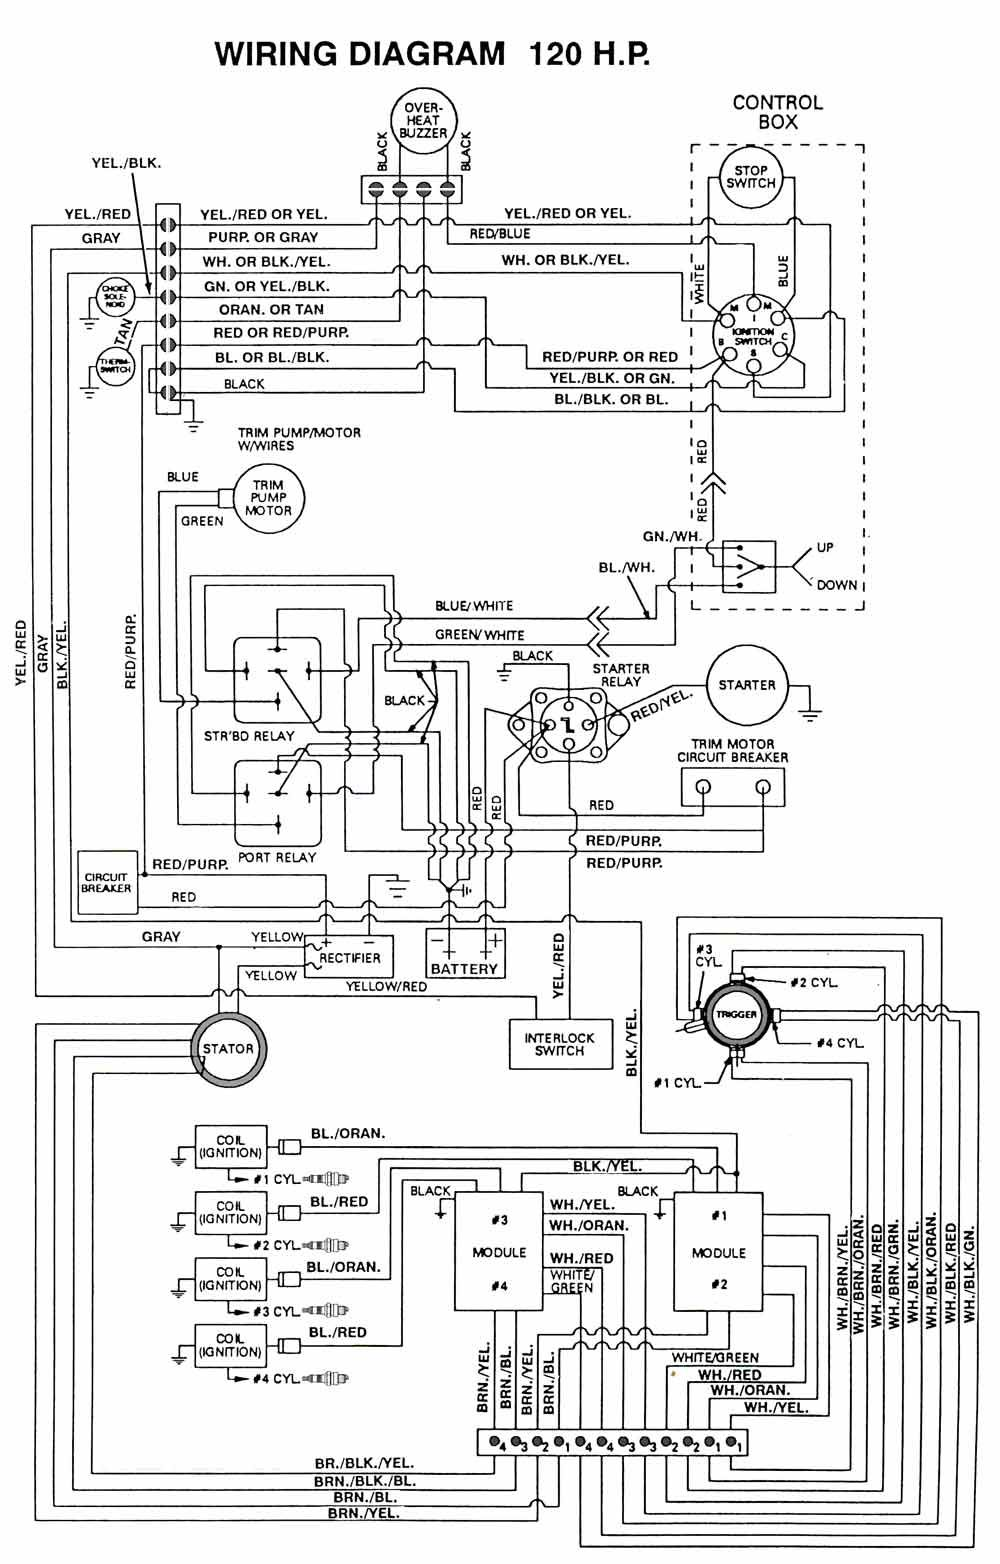 medium resolution of image result for wiring diagram for 1990 mercury force 120 hp ignition 4 cyl force wiring mercury marine ignition 4 cyl force wiring